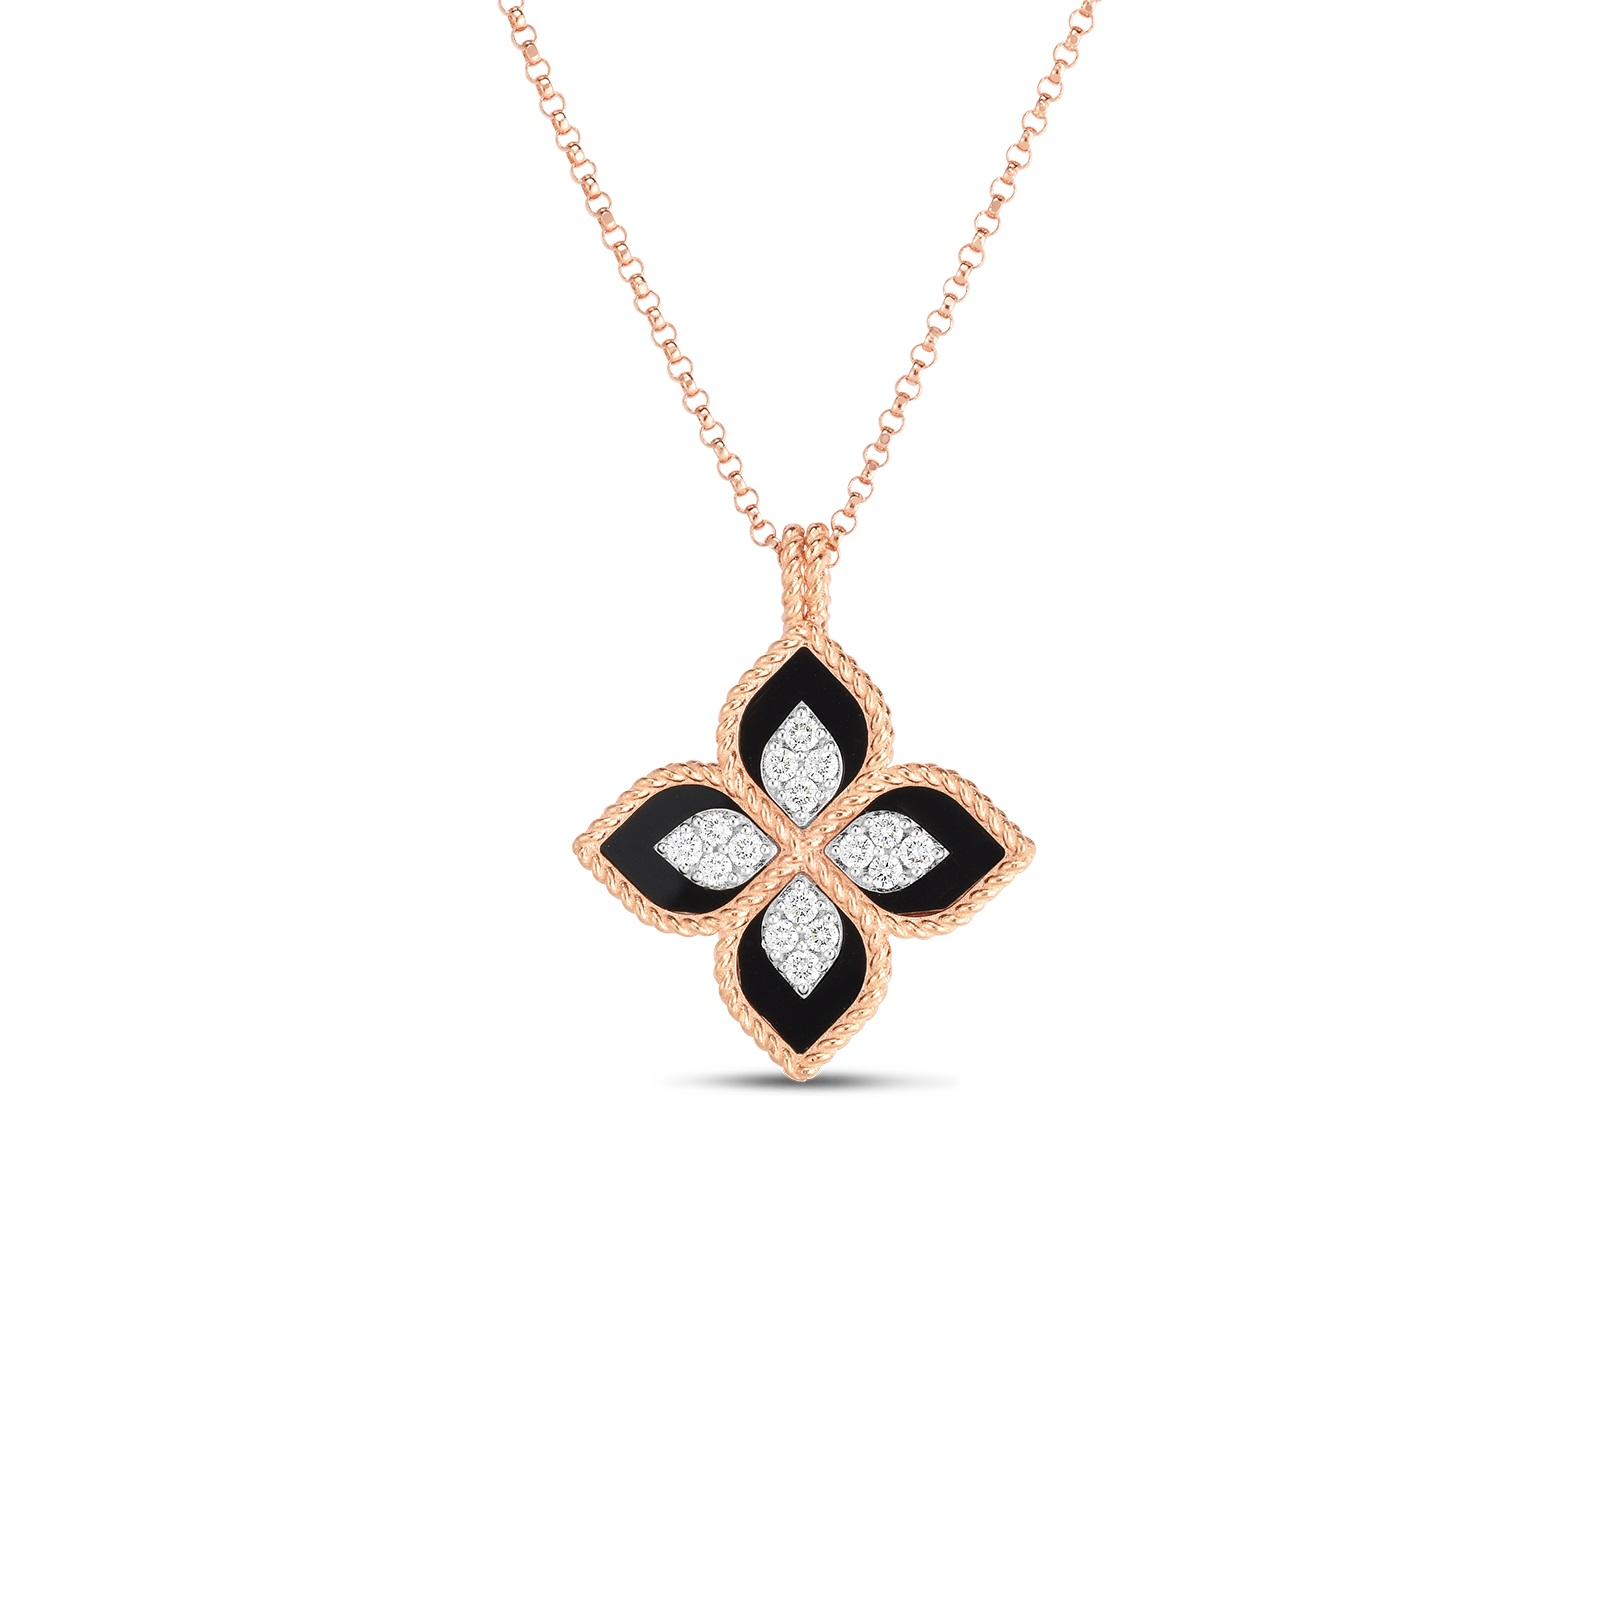 Roberto Coin 18K Rose Gold .16cts  Diamond Gold Necklace with Stones 8882784AHCHXB